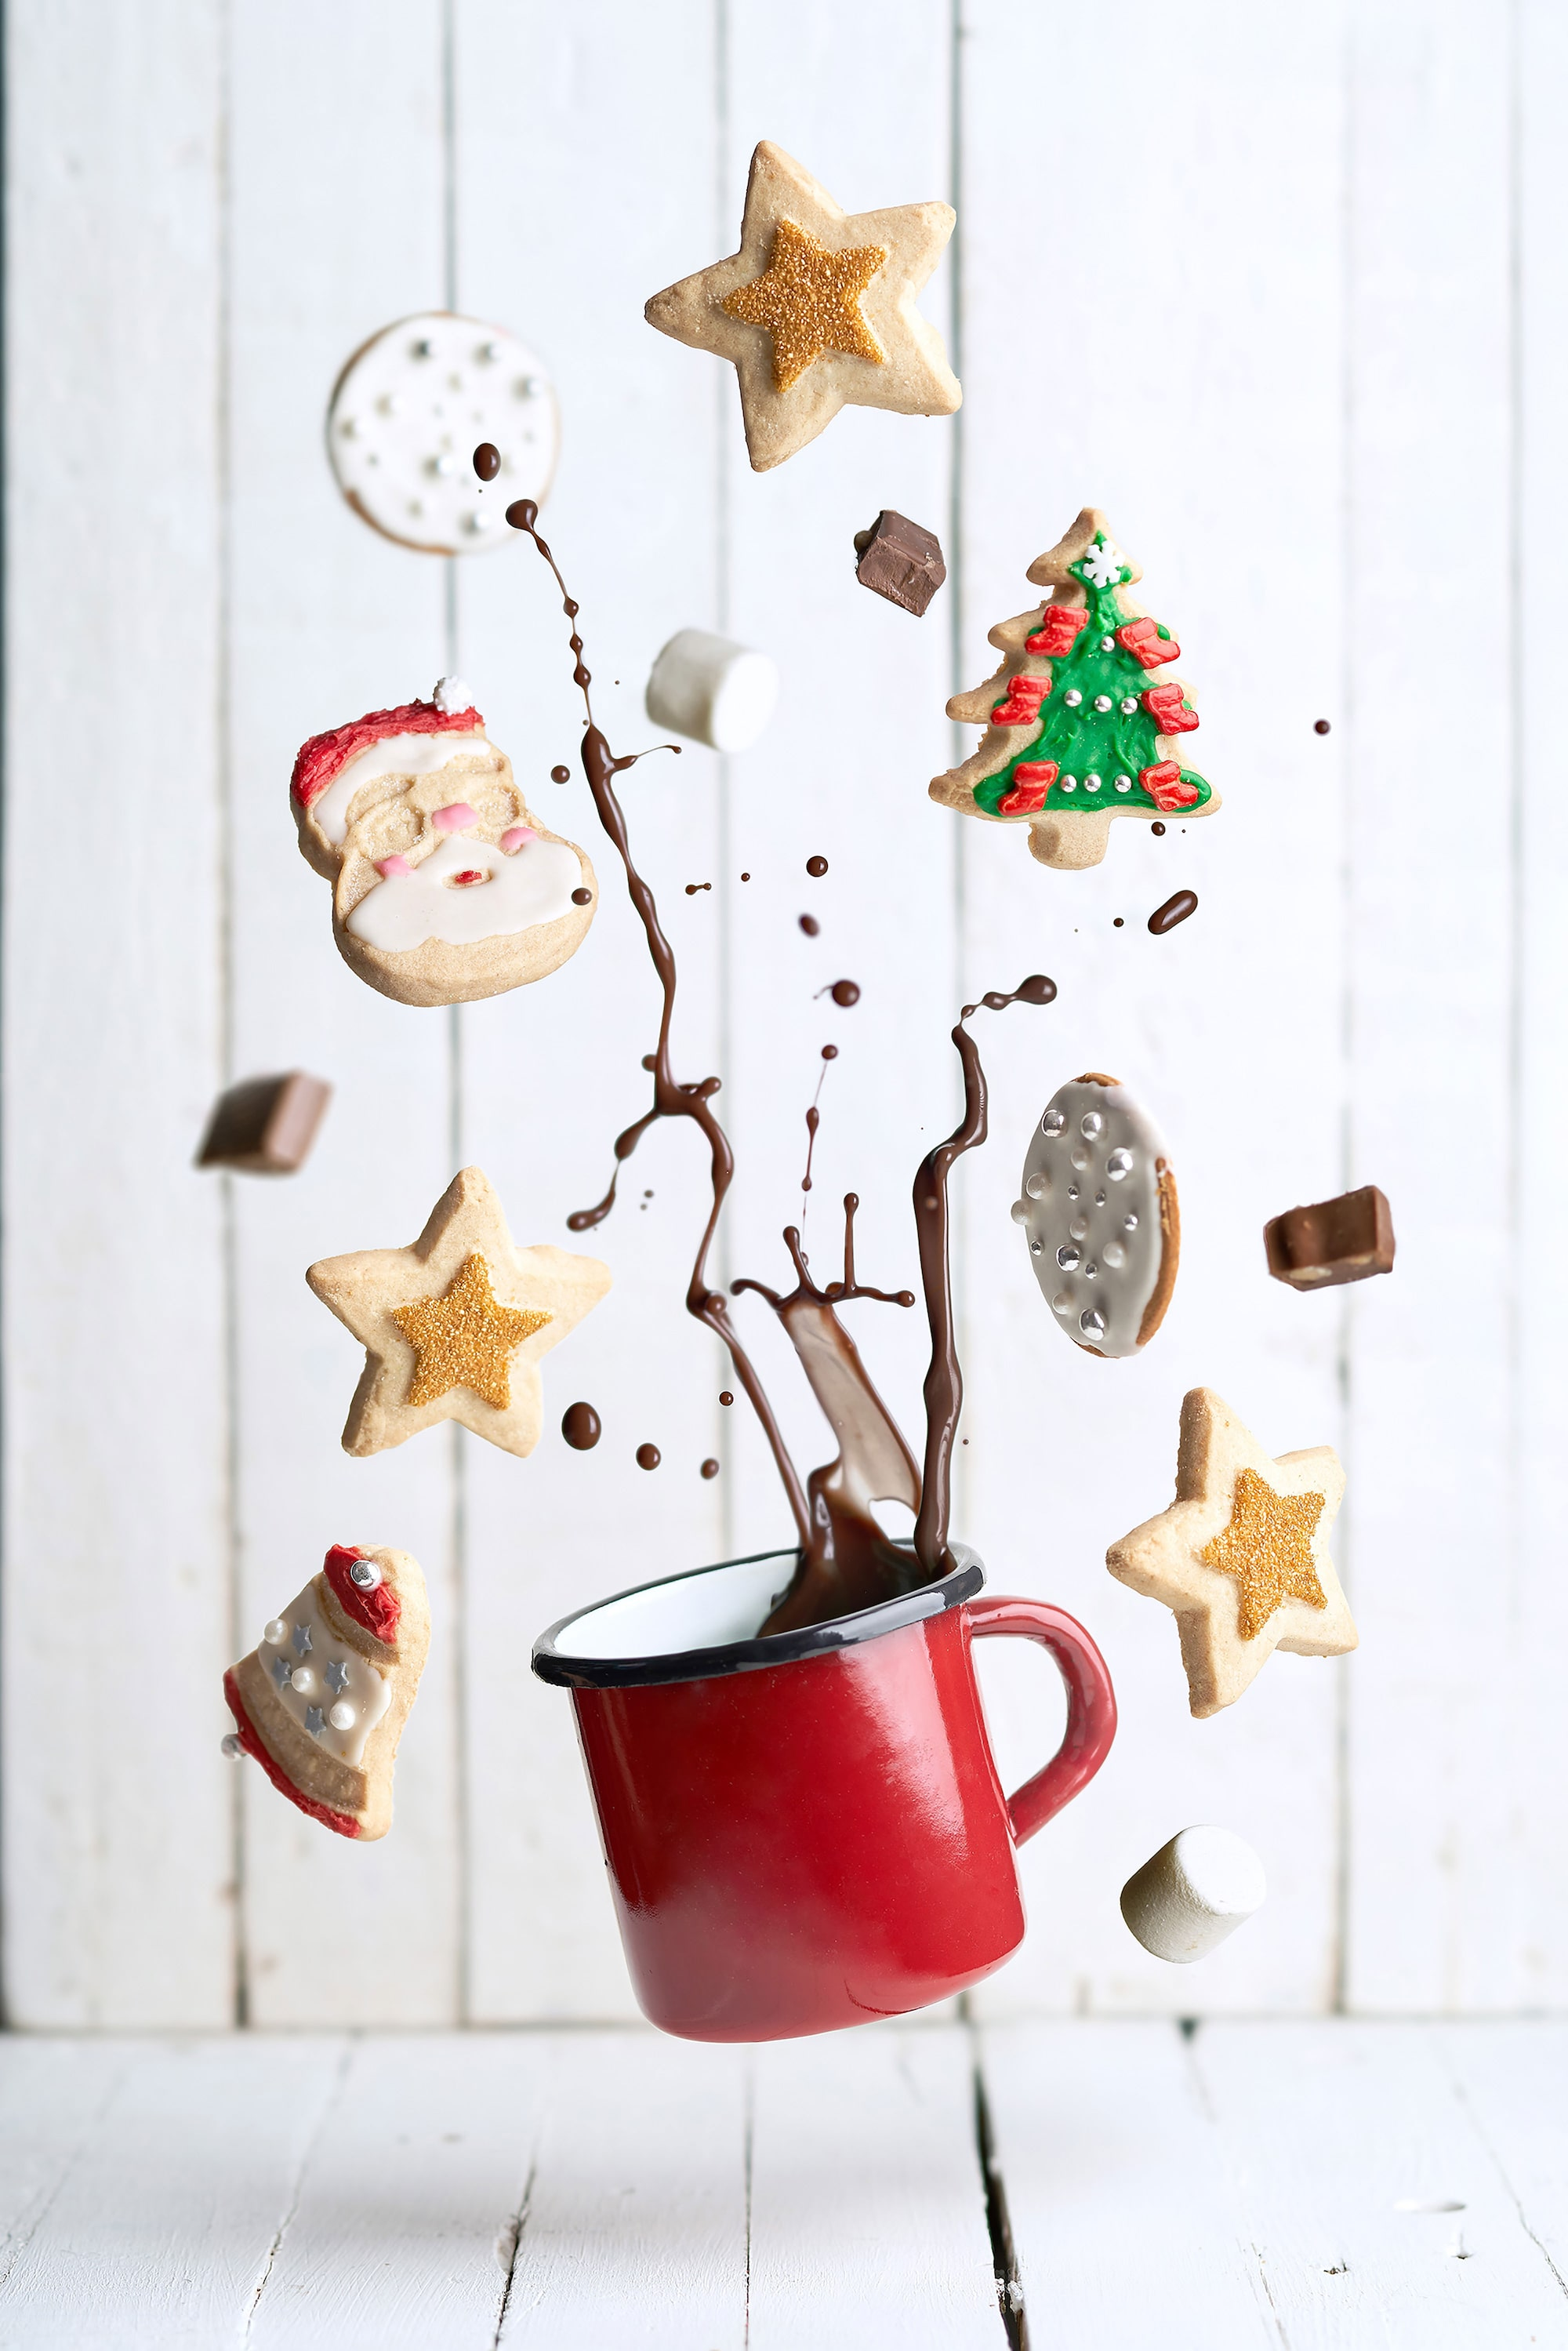 pablo gil sony alpha 7RIII cup of hot chocolate in mid air surrounded by floating cookies